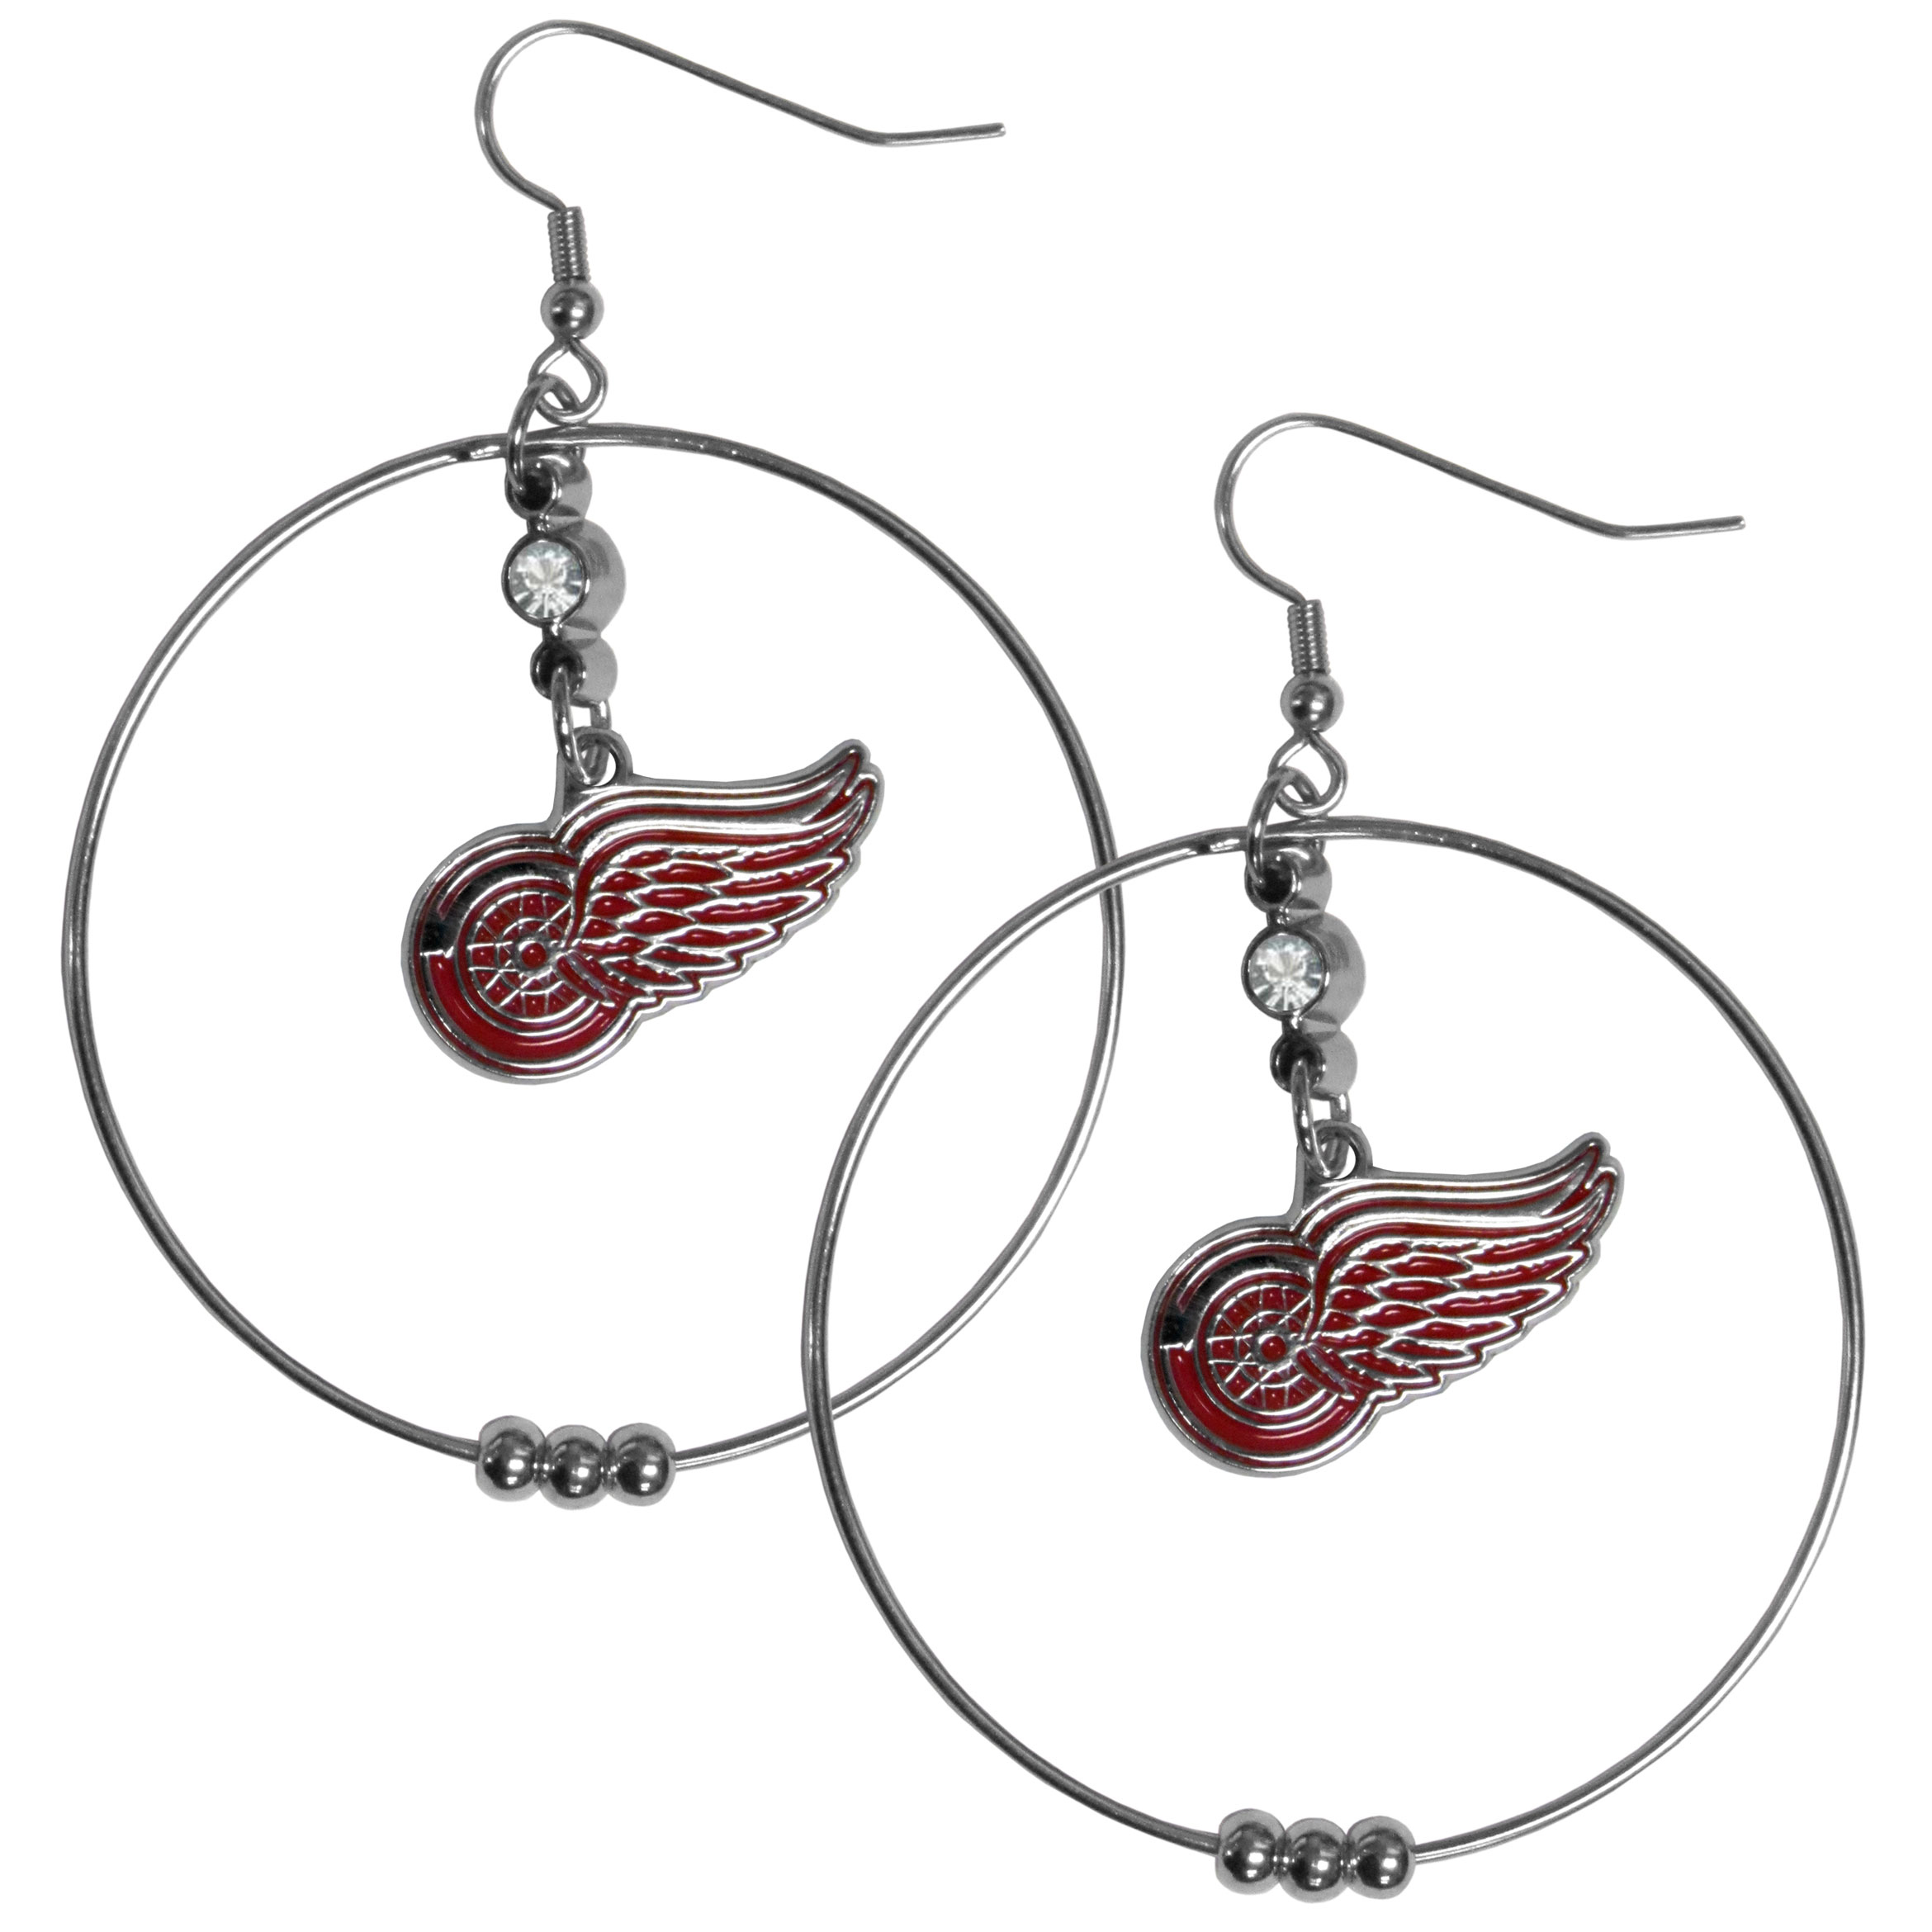 Detroit Red Wings® 2 Inch Hoop Earrings - Our large hoop earrings have a fully cast and enameled Detroit Red Wings® charm with enameled detail and a high polish nickel free chrome finish and rhinestone access. Hypoallergenic fishhook posts.